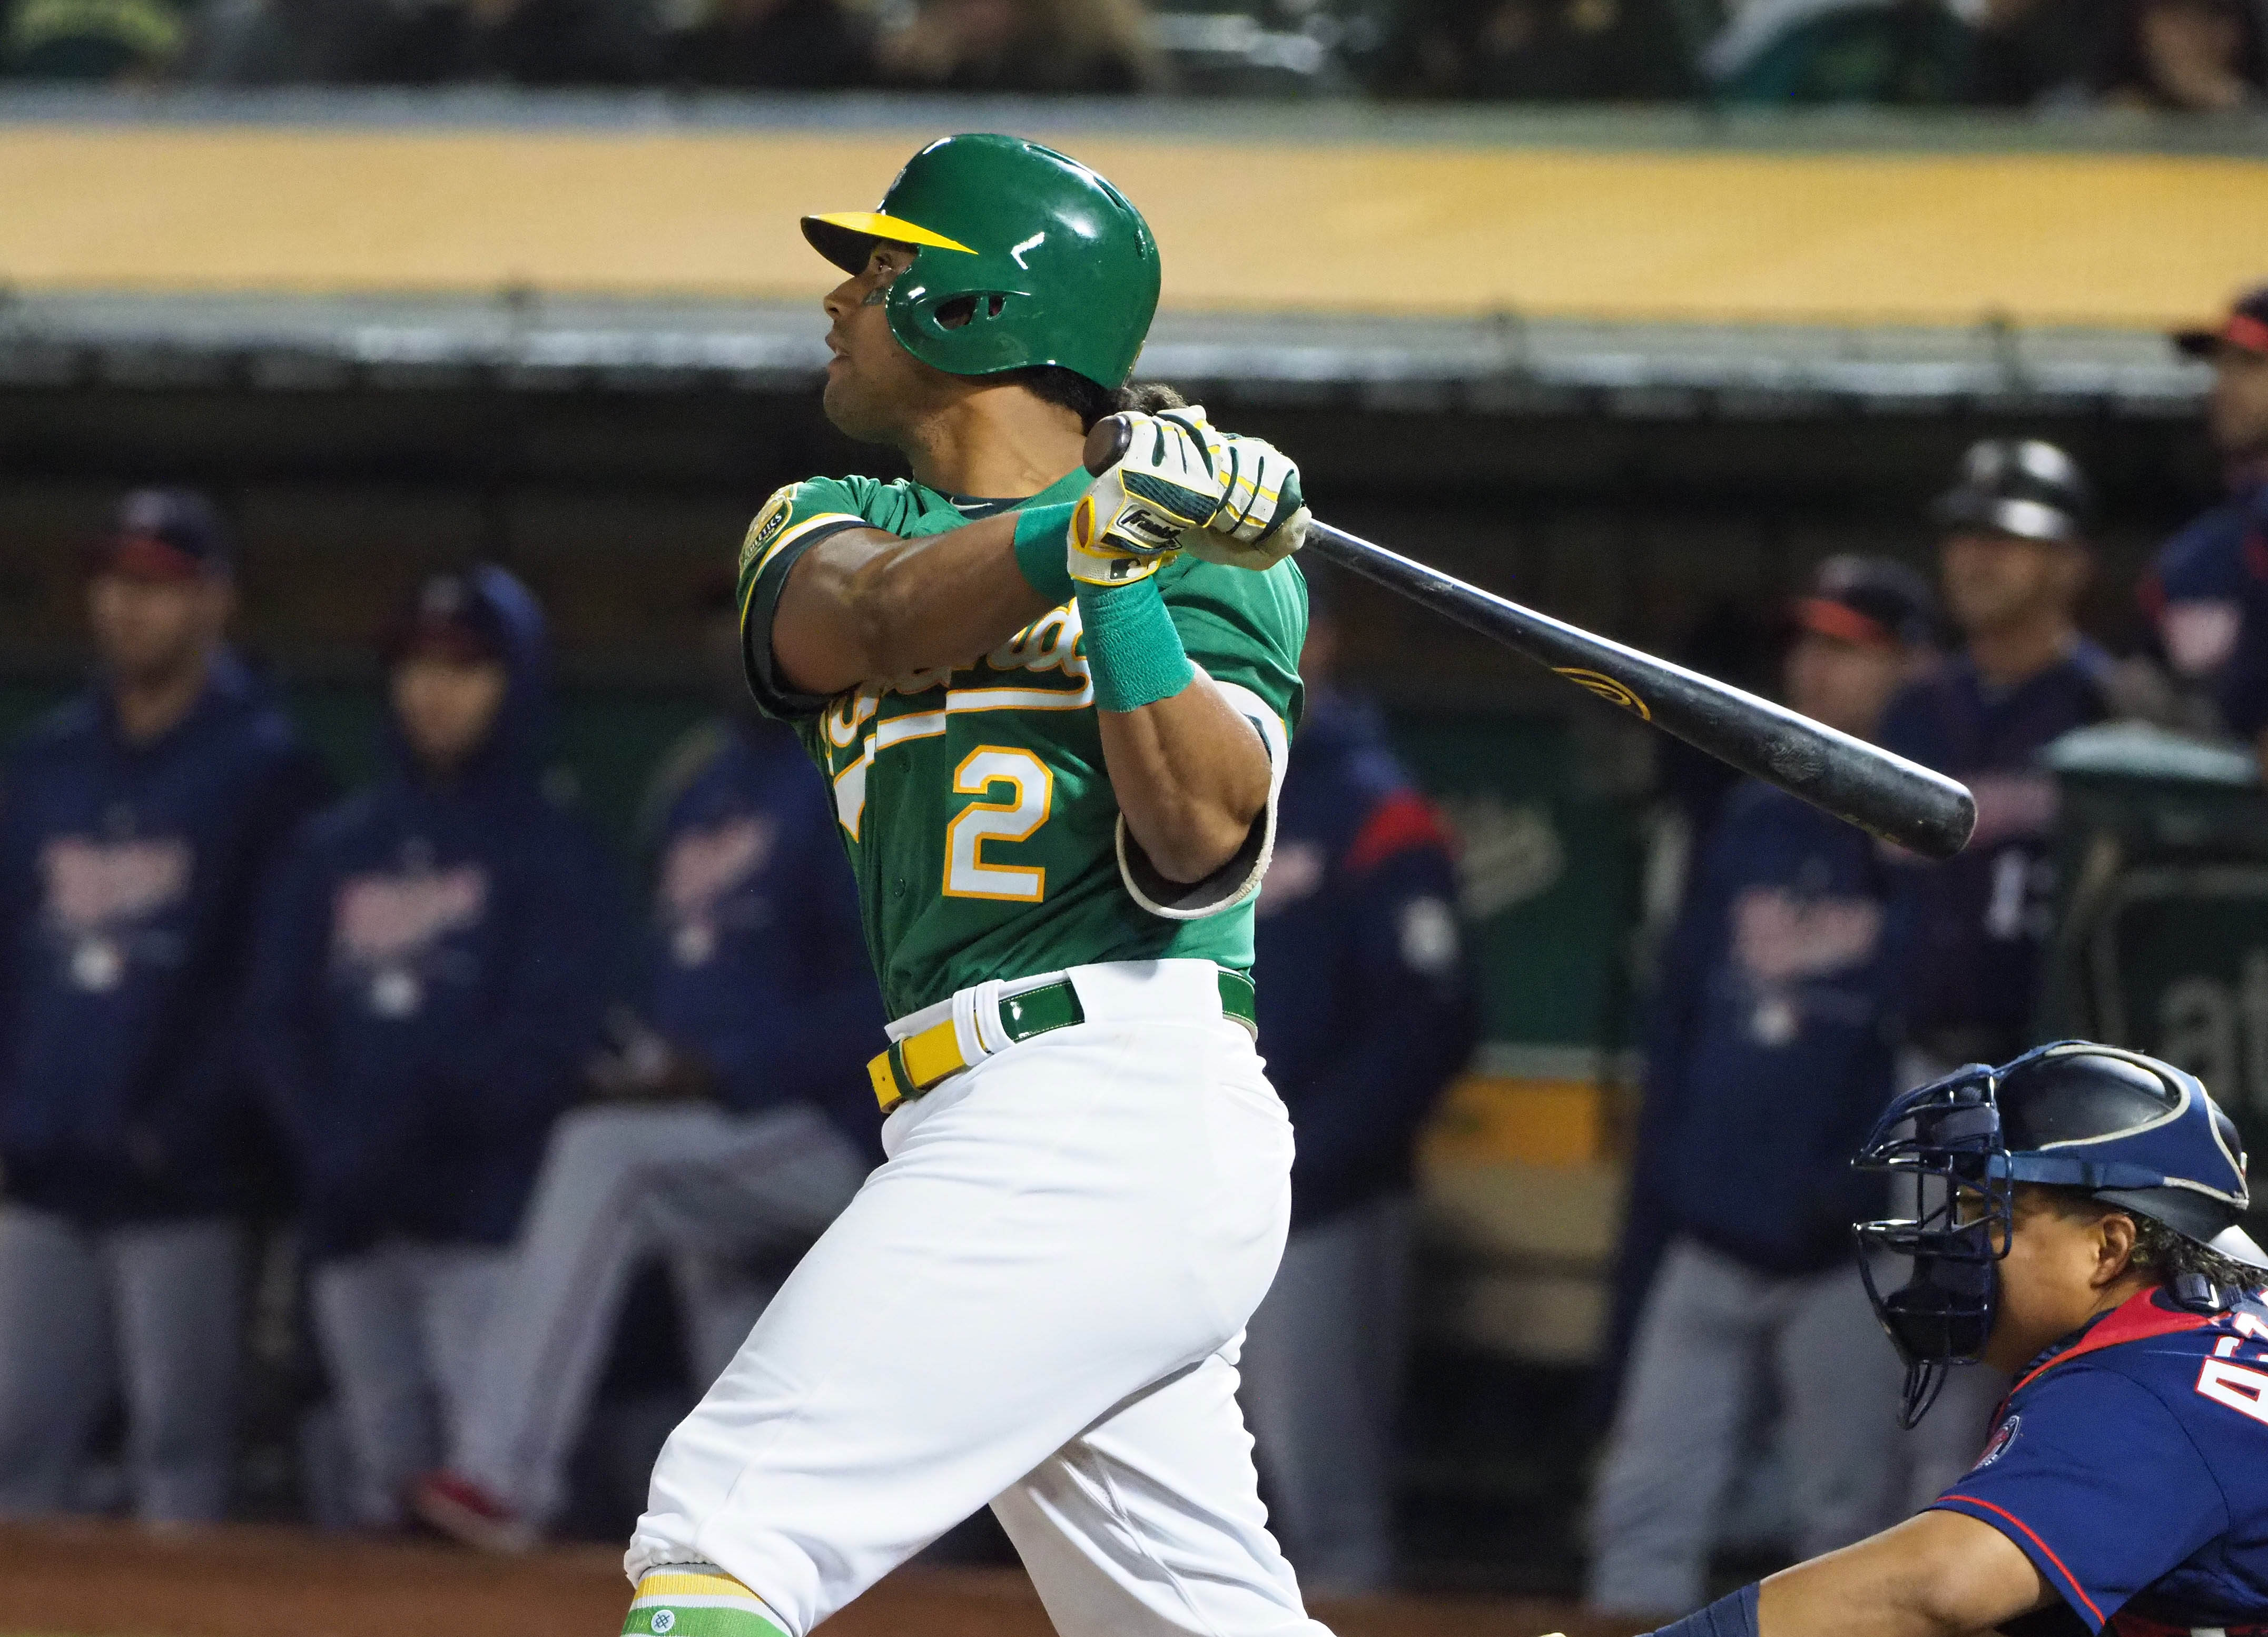 Khris Davis must be baseball's most underrated slugger